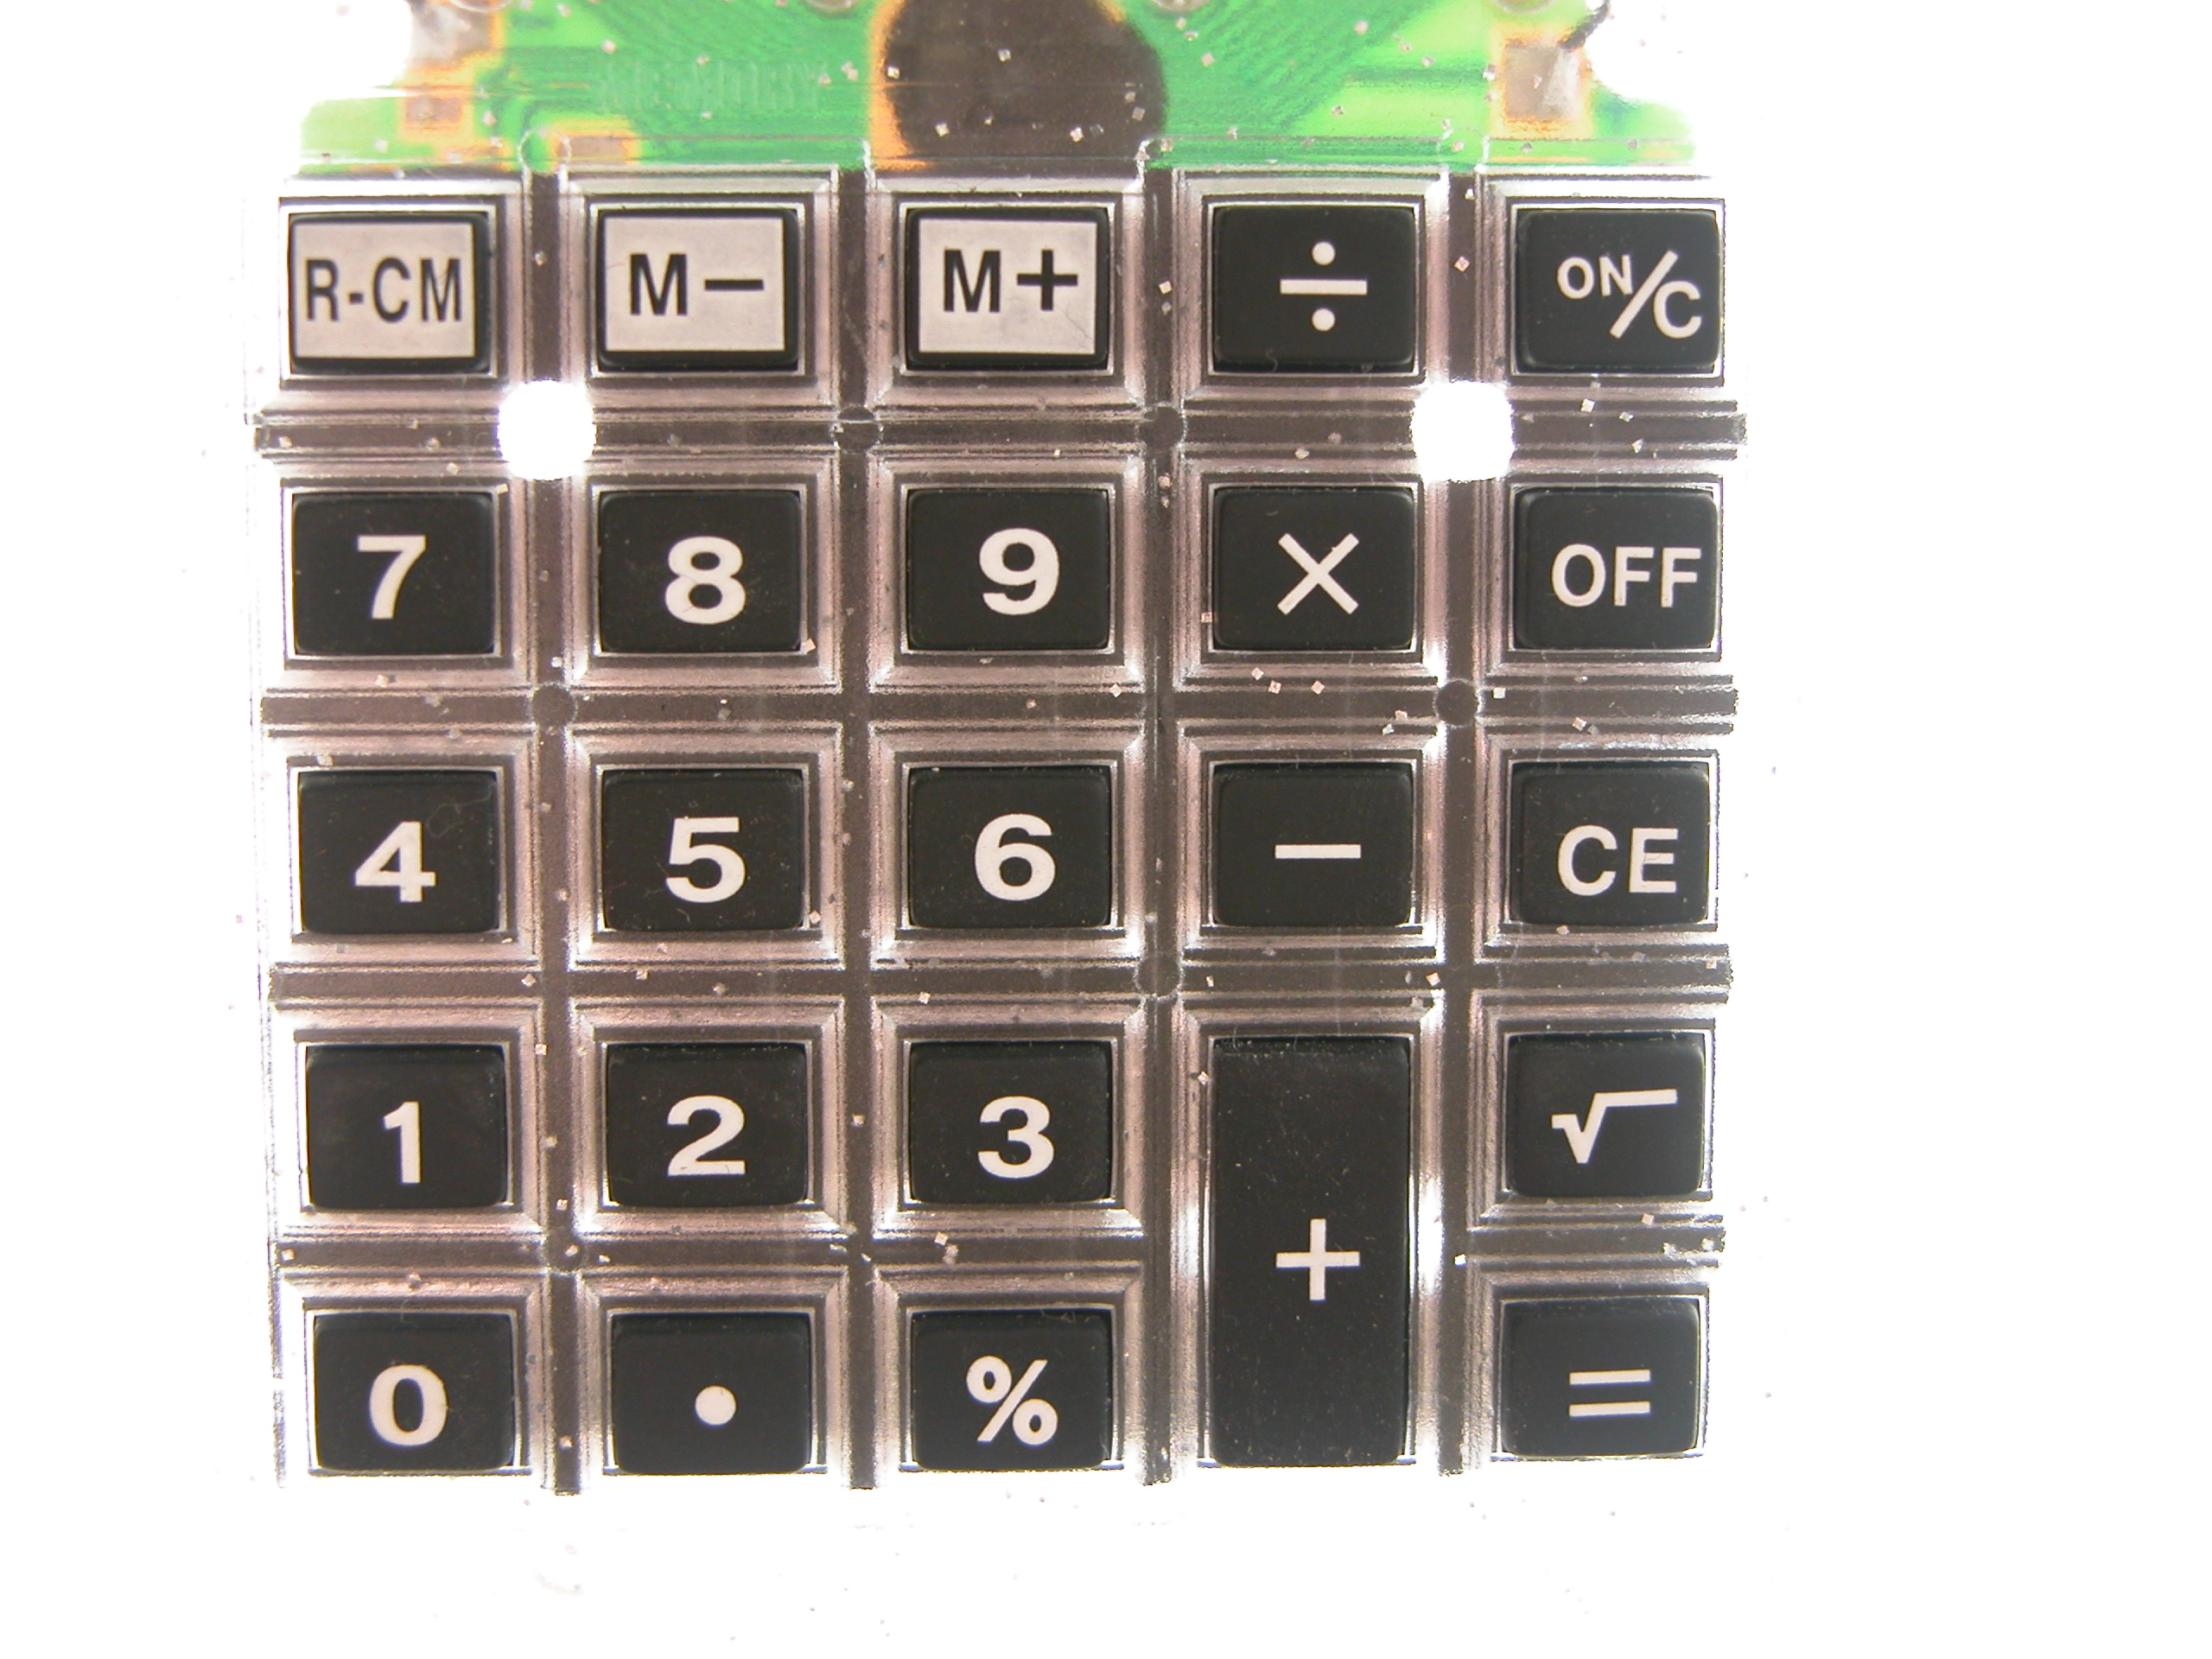 objects circuits keys keypad calculator key numbers typography sanserif